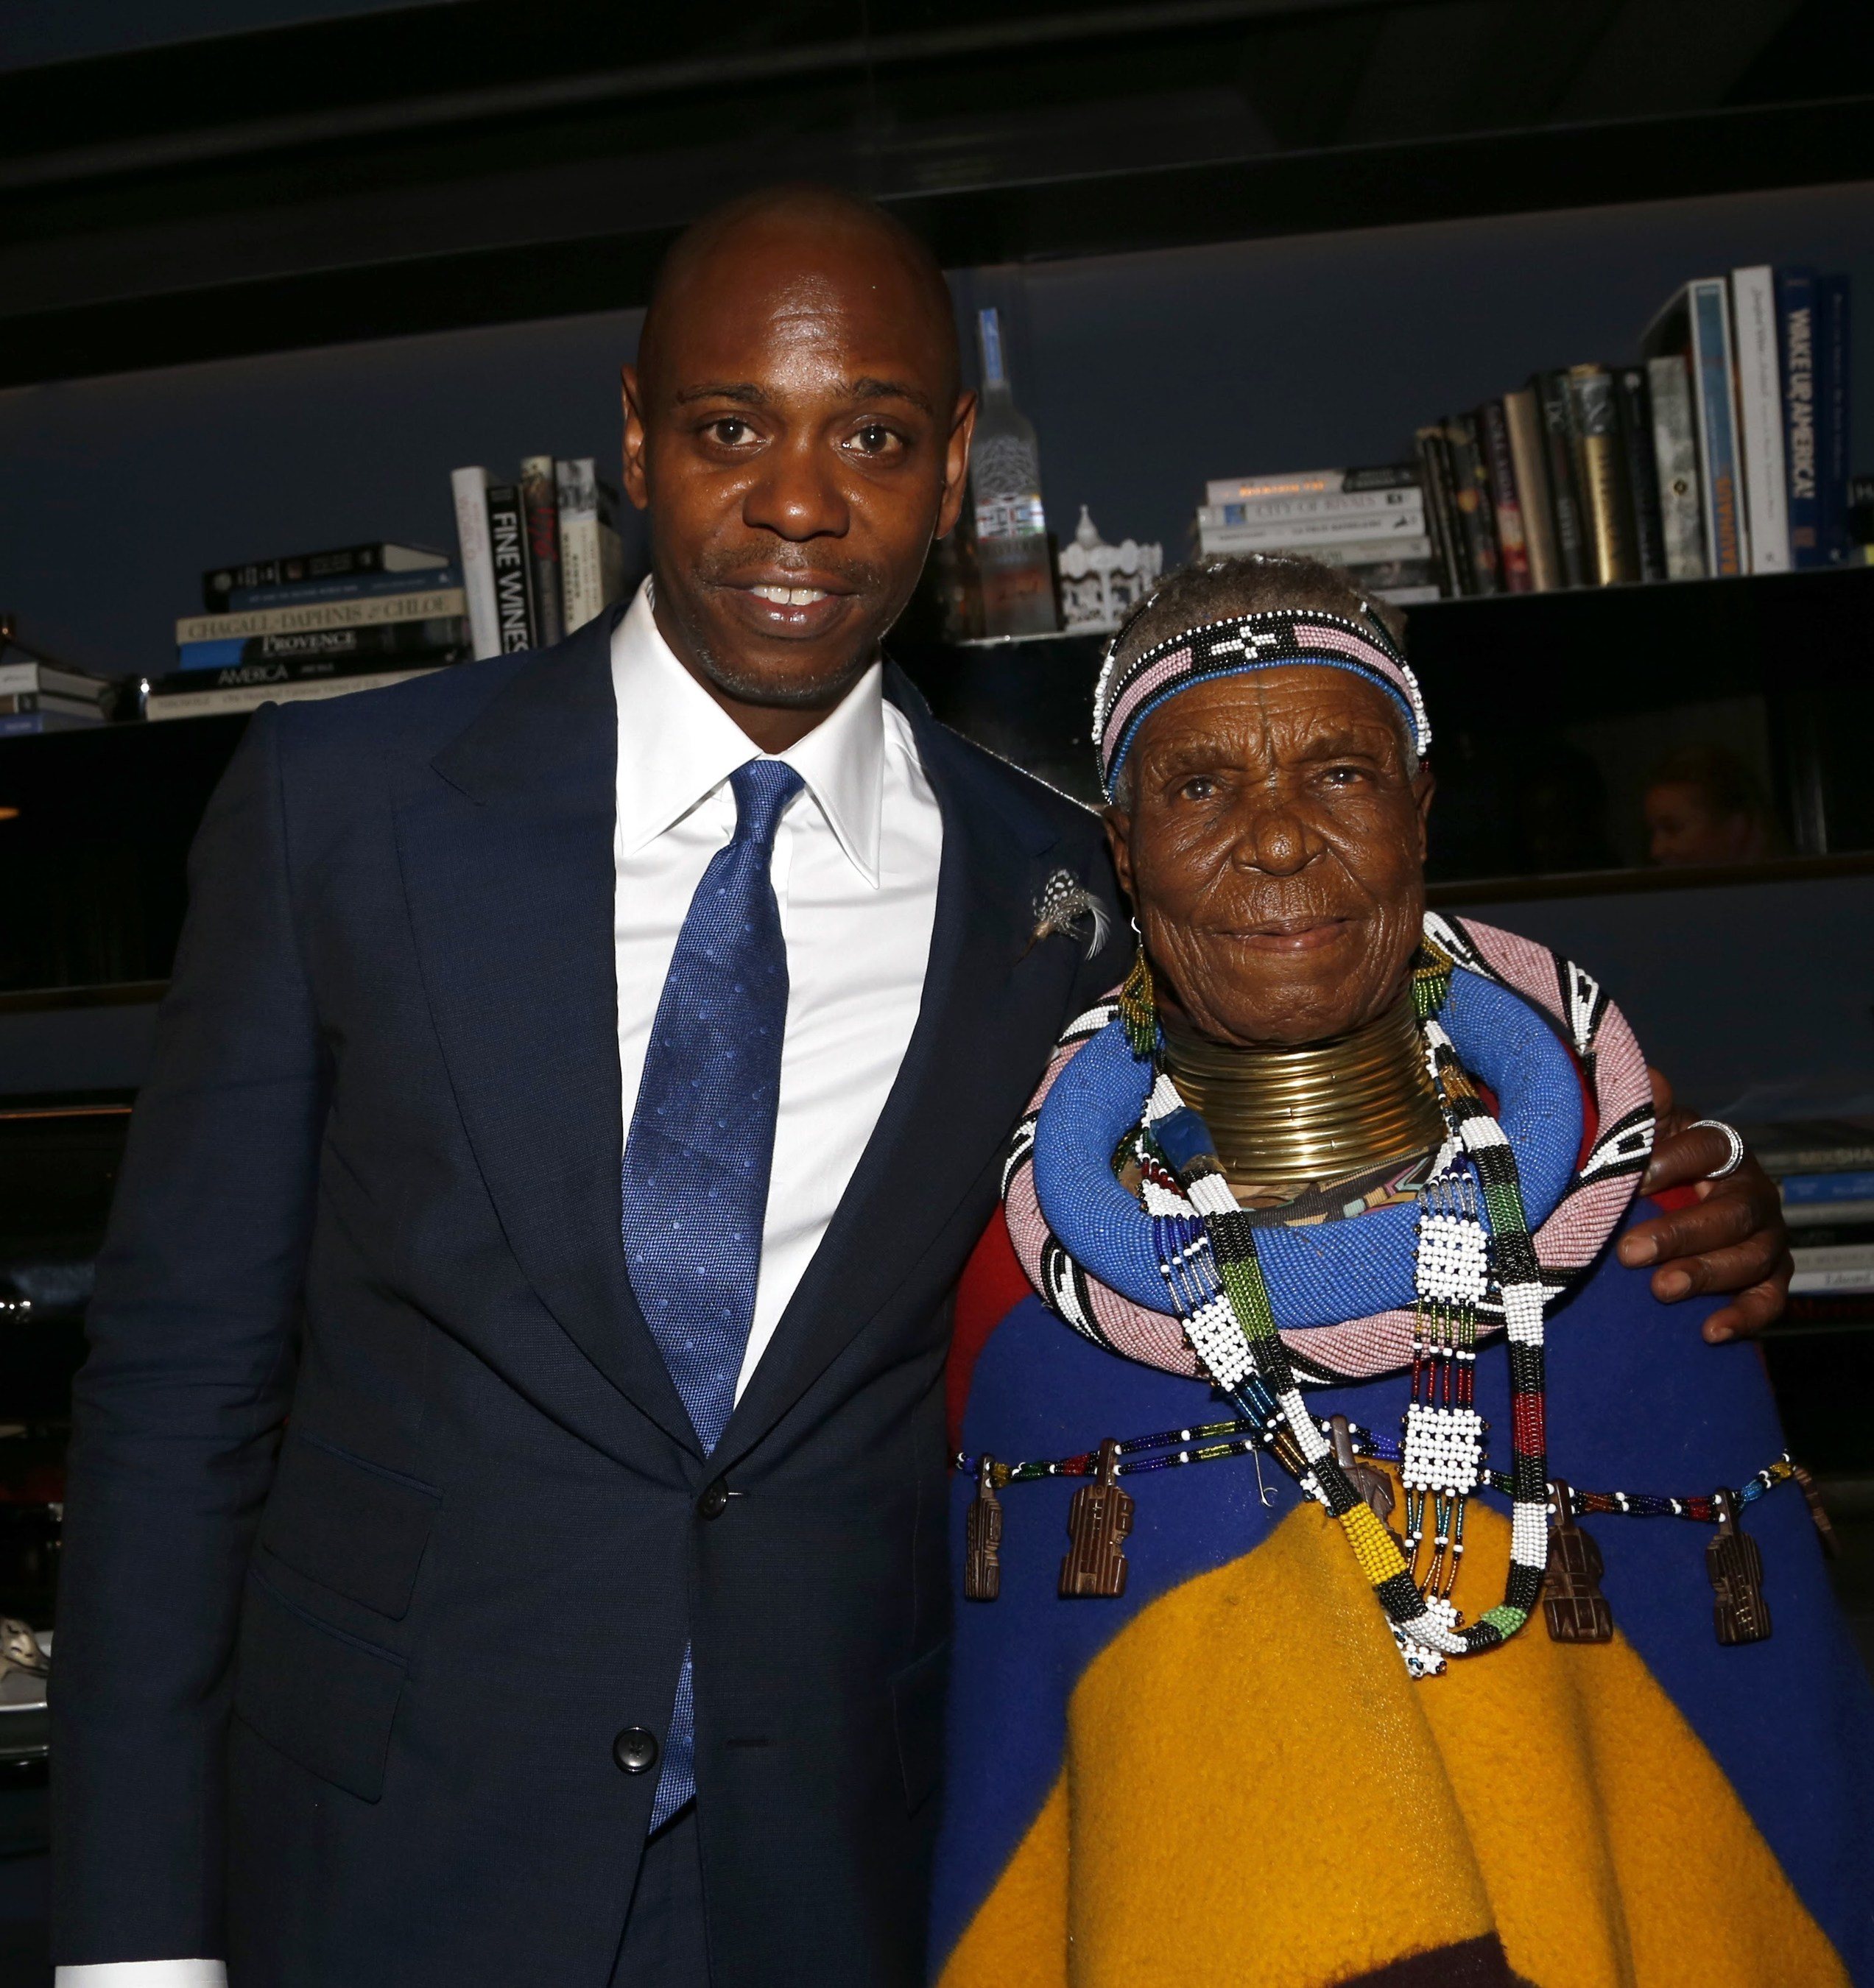 Dave Chappelle and Belvedere (RED) artist Esther Mahlangu at the National Museum of African American History and Culture After Party with Moët Hennessy